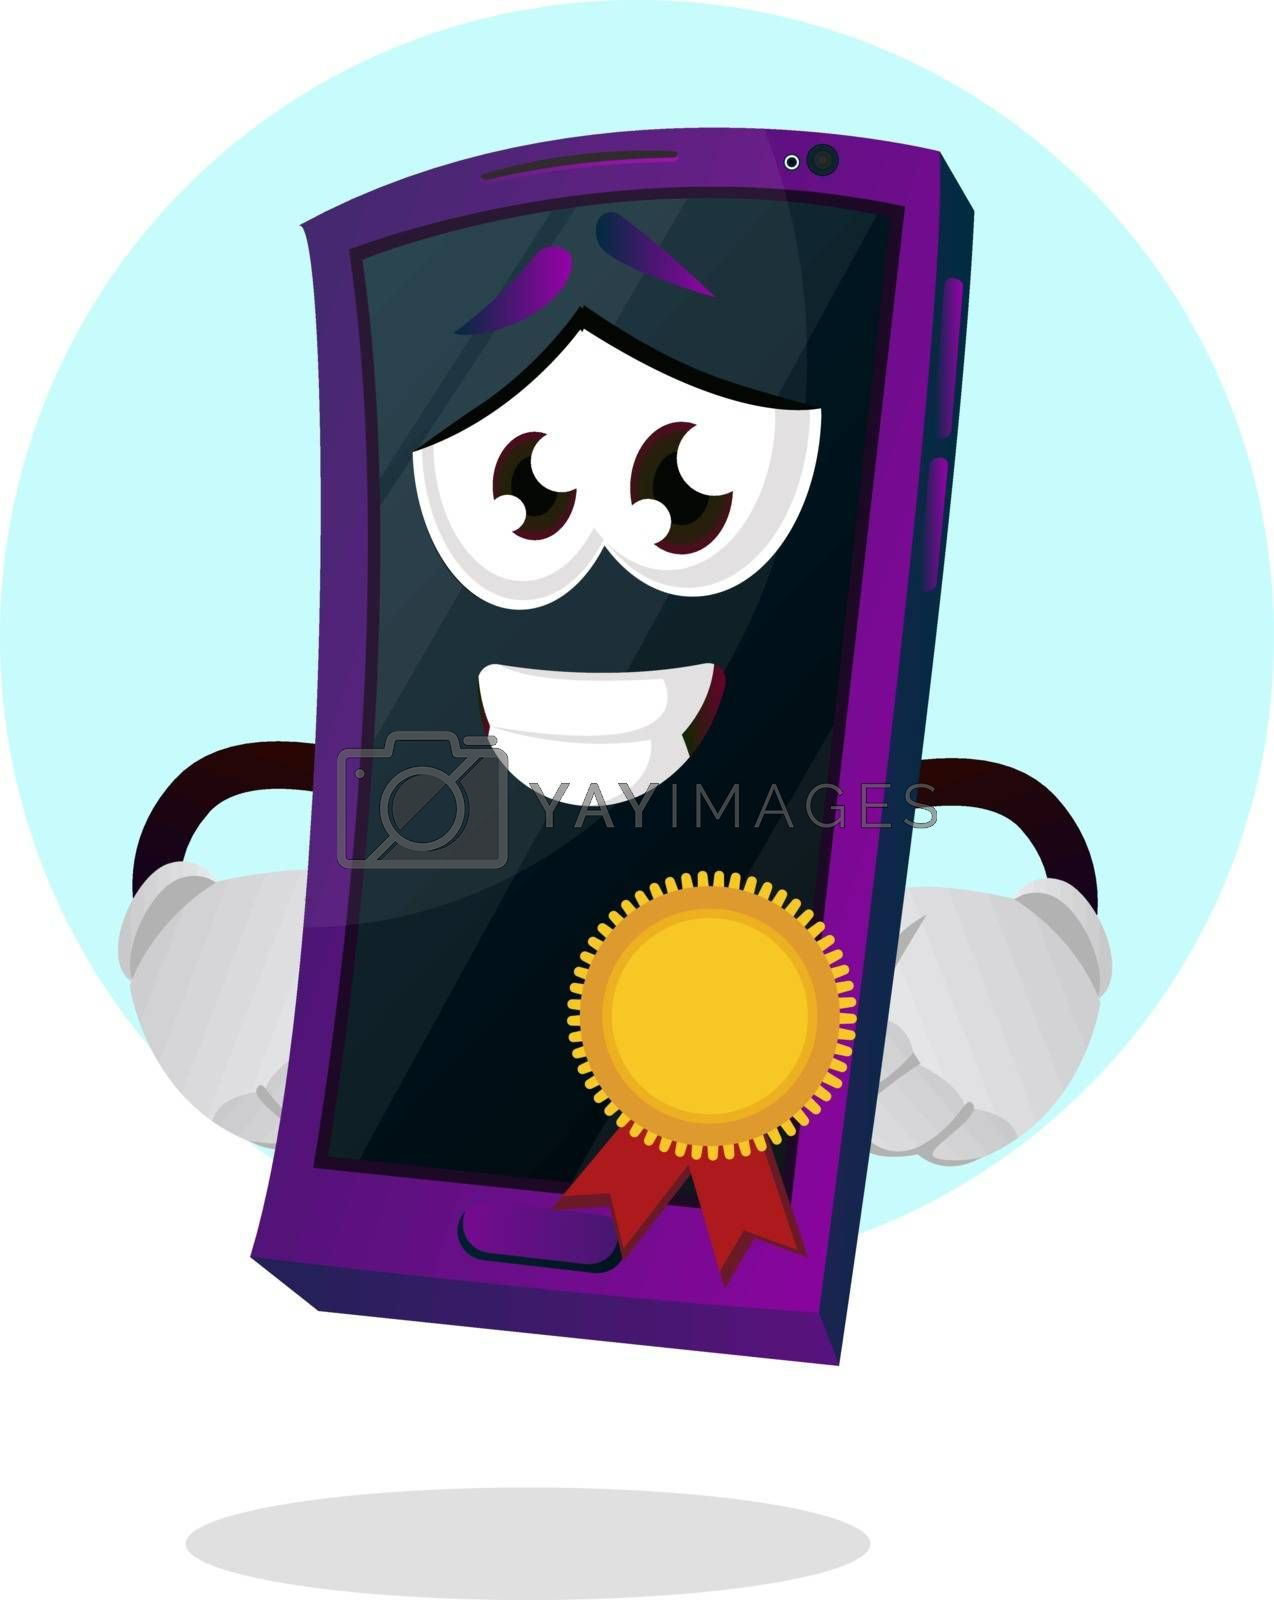 Royalty free image of Mobile emoji with a medal illustration vector on white backgroun by Morphart